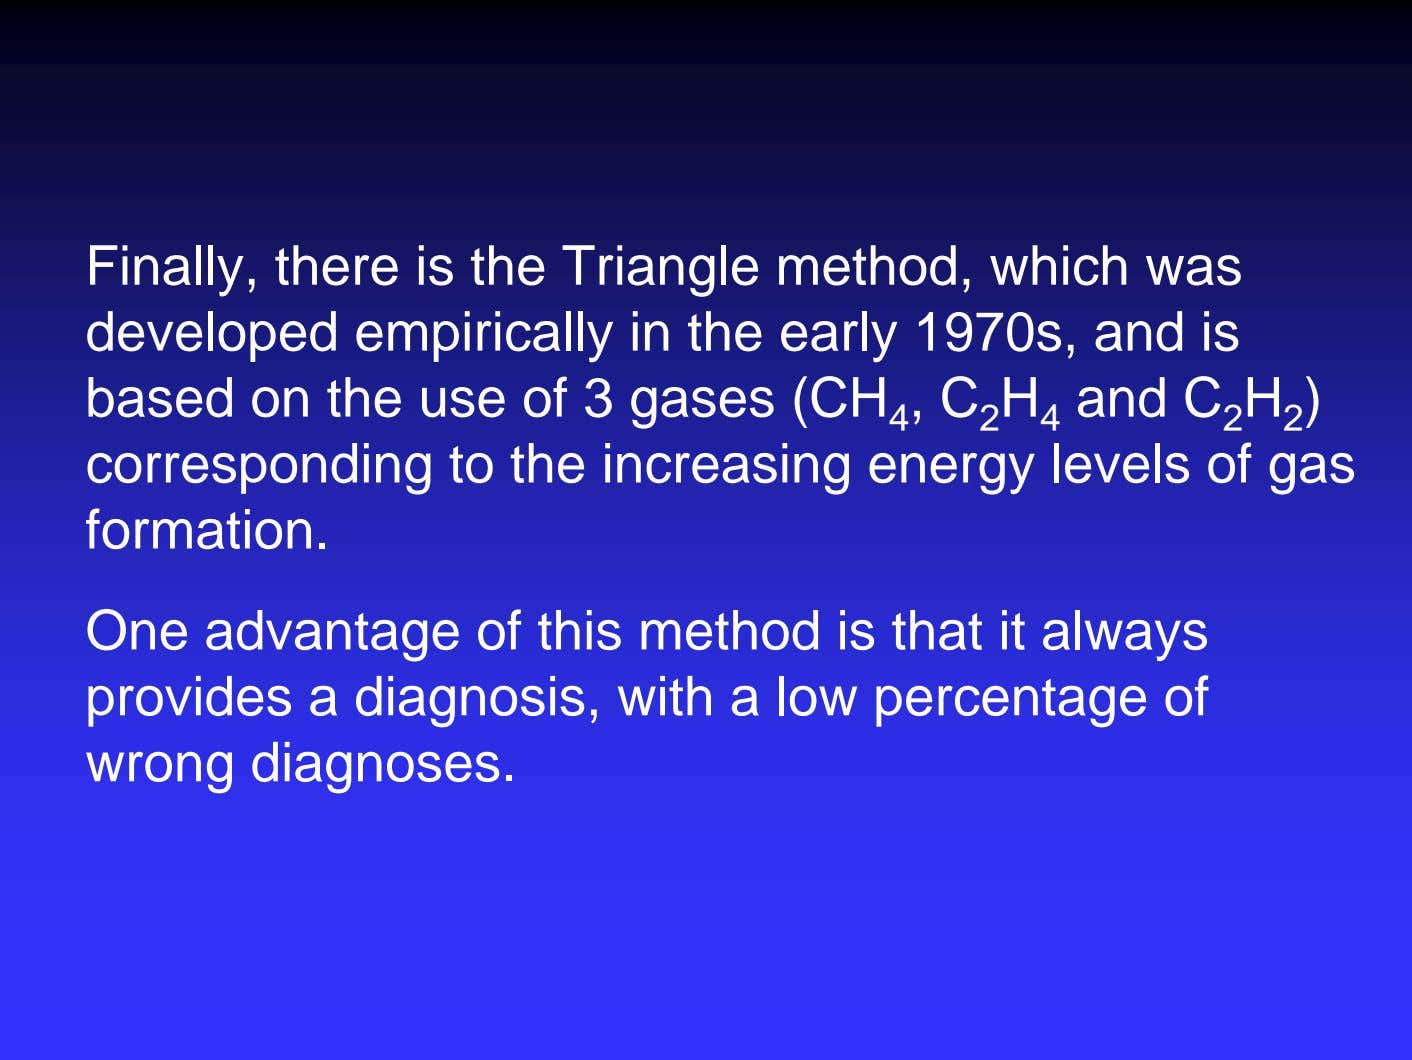 Finally, there is the Triangle method, which was developed empirically in the early 1970s, and